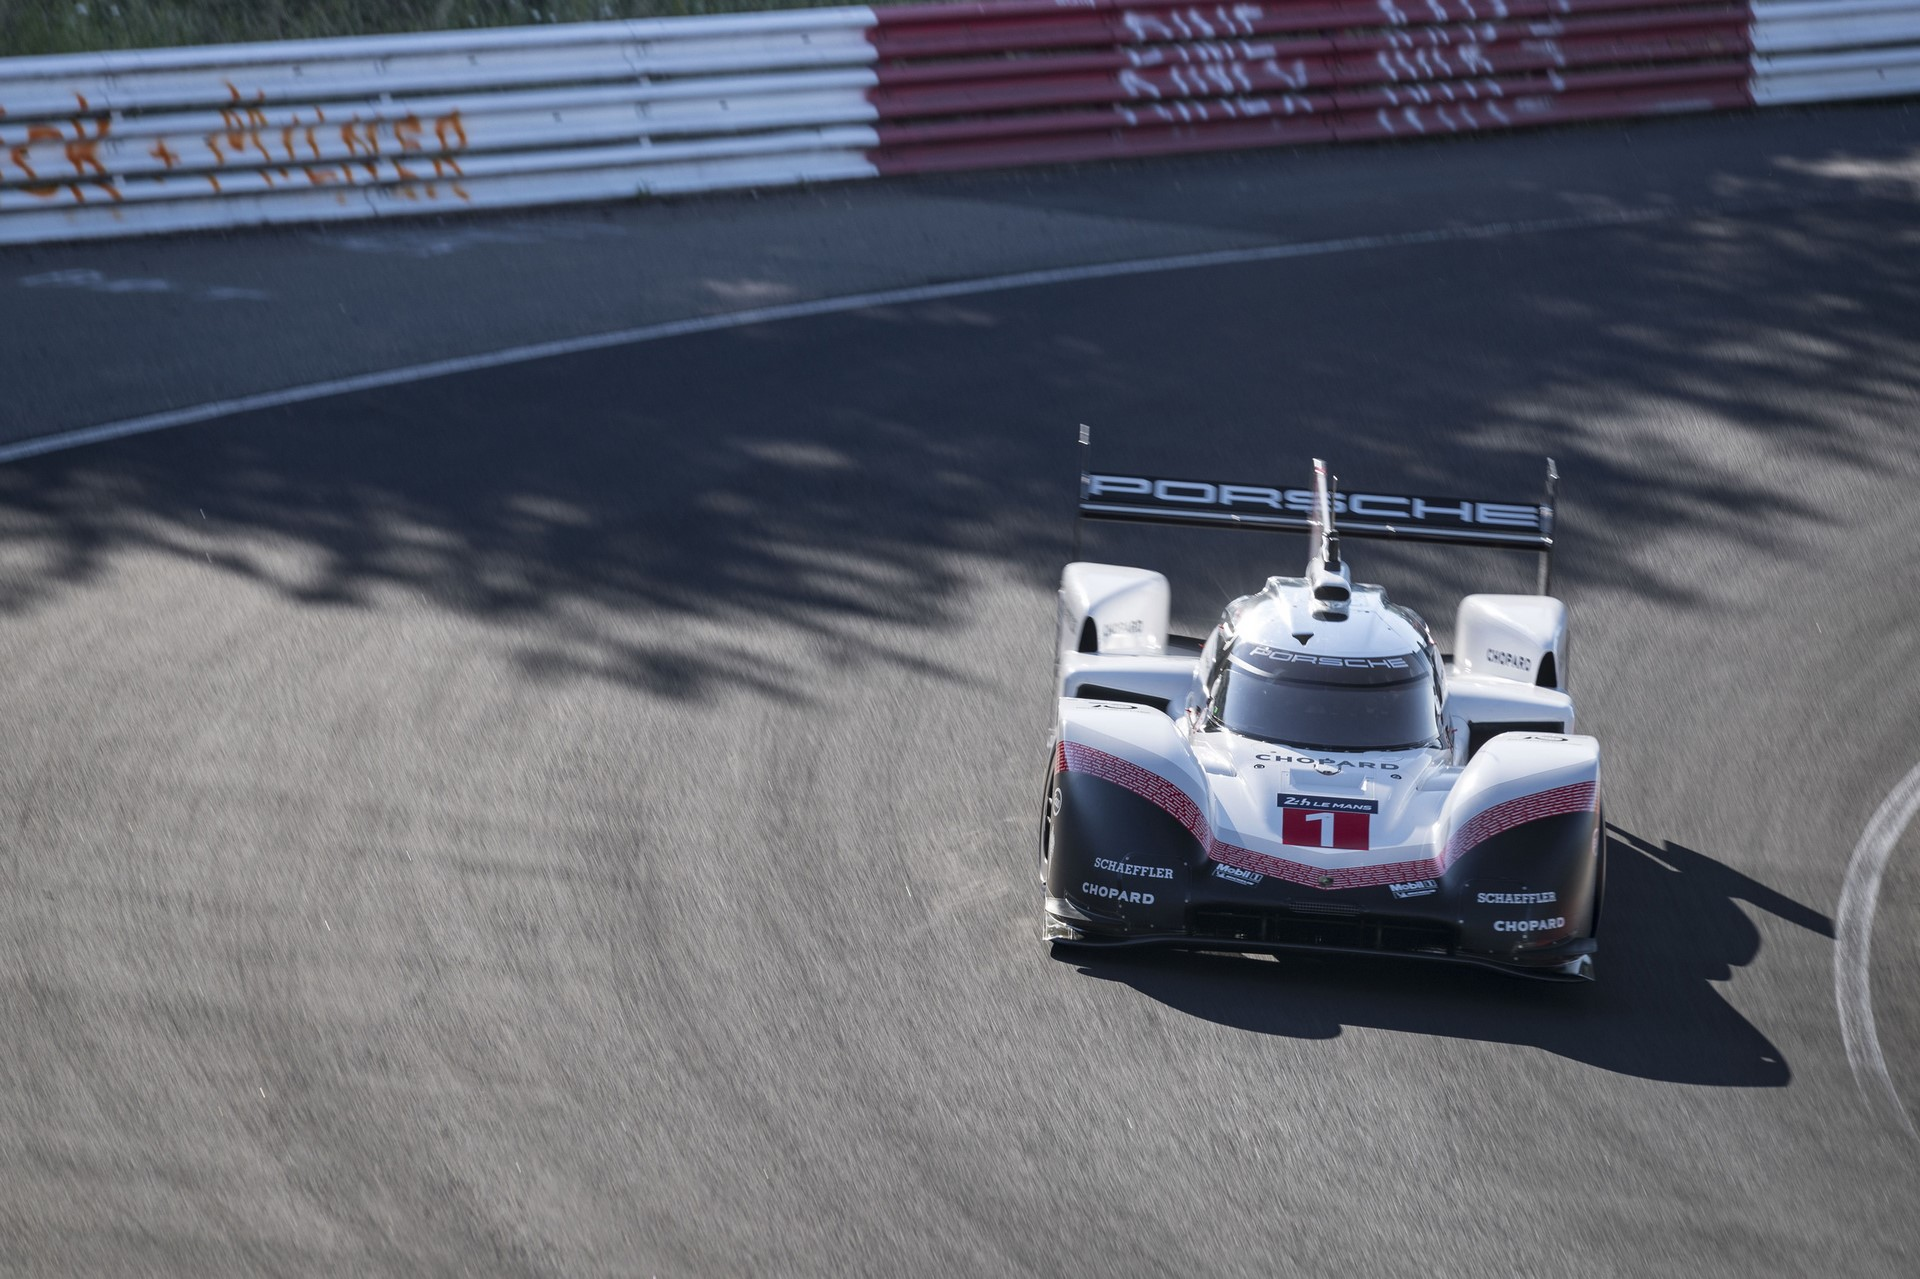 porsche-919-ring-lap-record-012-1